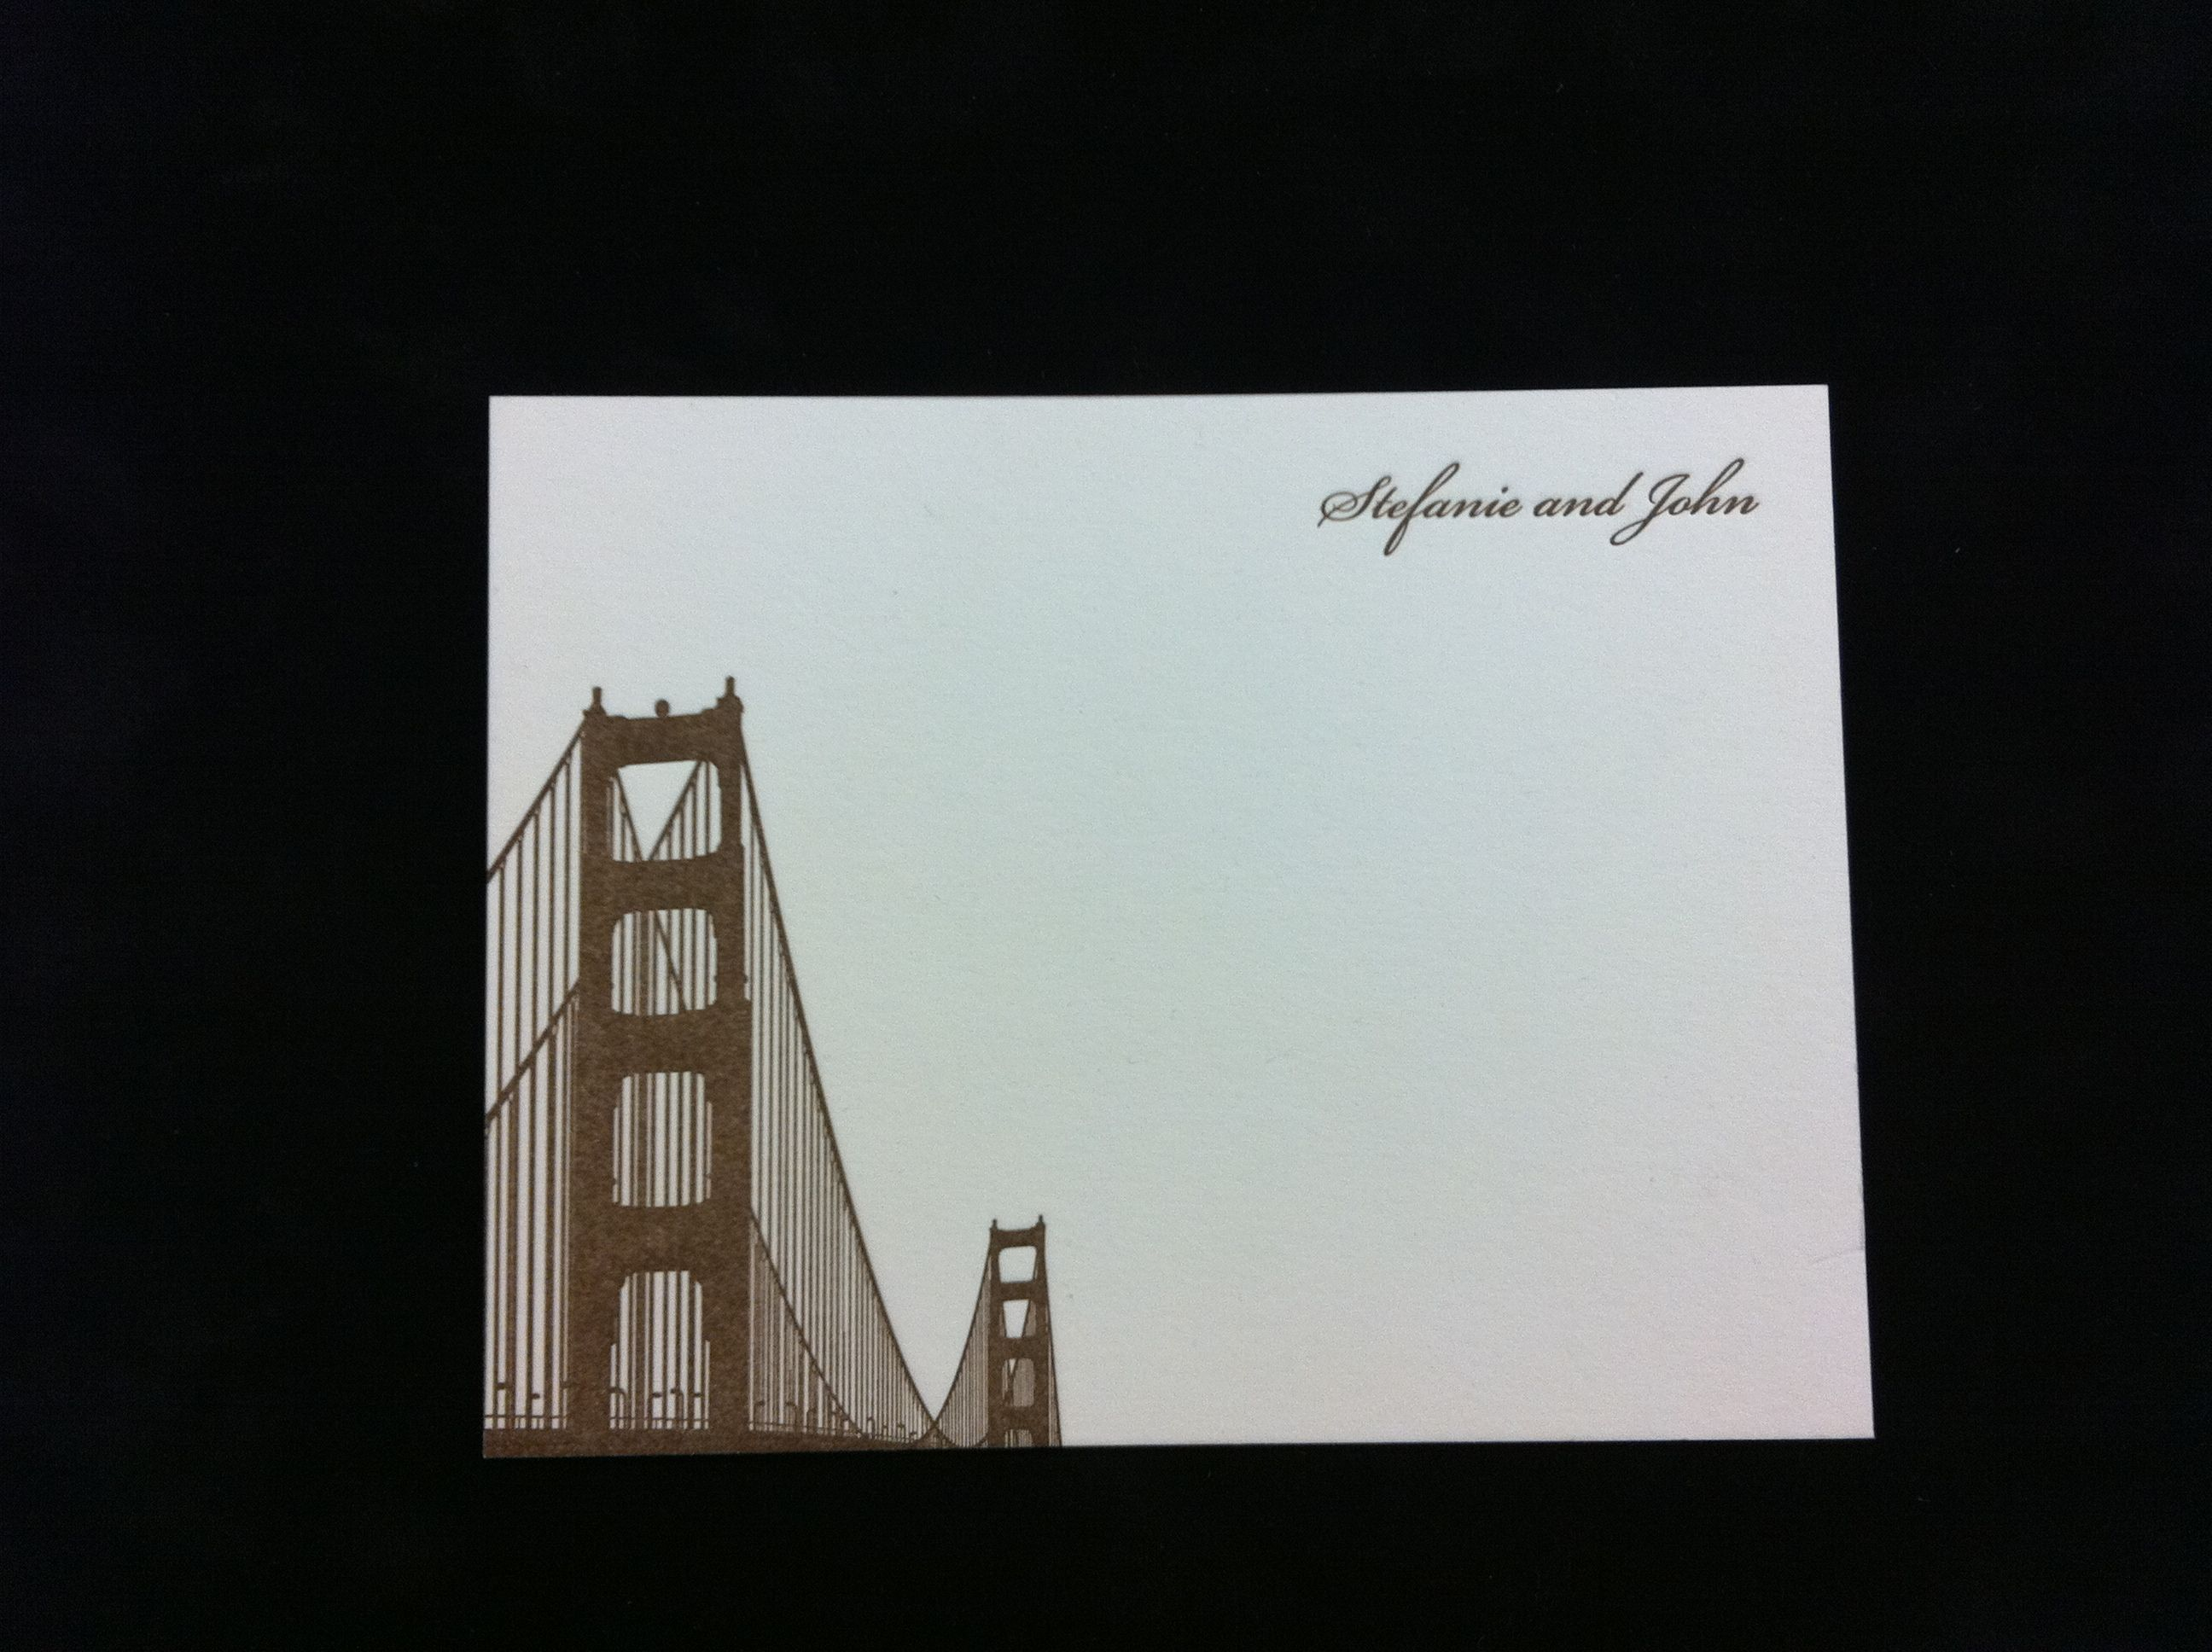 Letterpress san francisco wedding thank you cards with golden gate san francisco themed golden gate bridge letterpress and thermography wedding invitations save the dates wedding thank you cards and stationery at hyegraph stopboris Choice Image